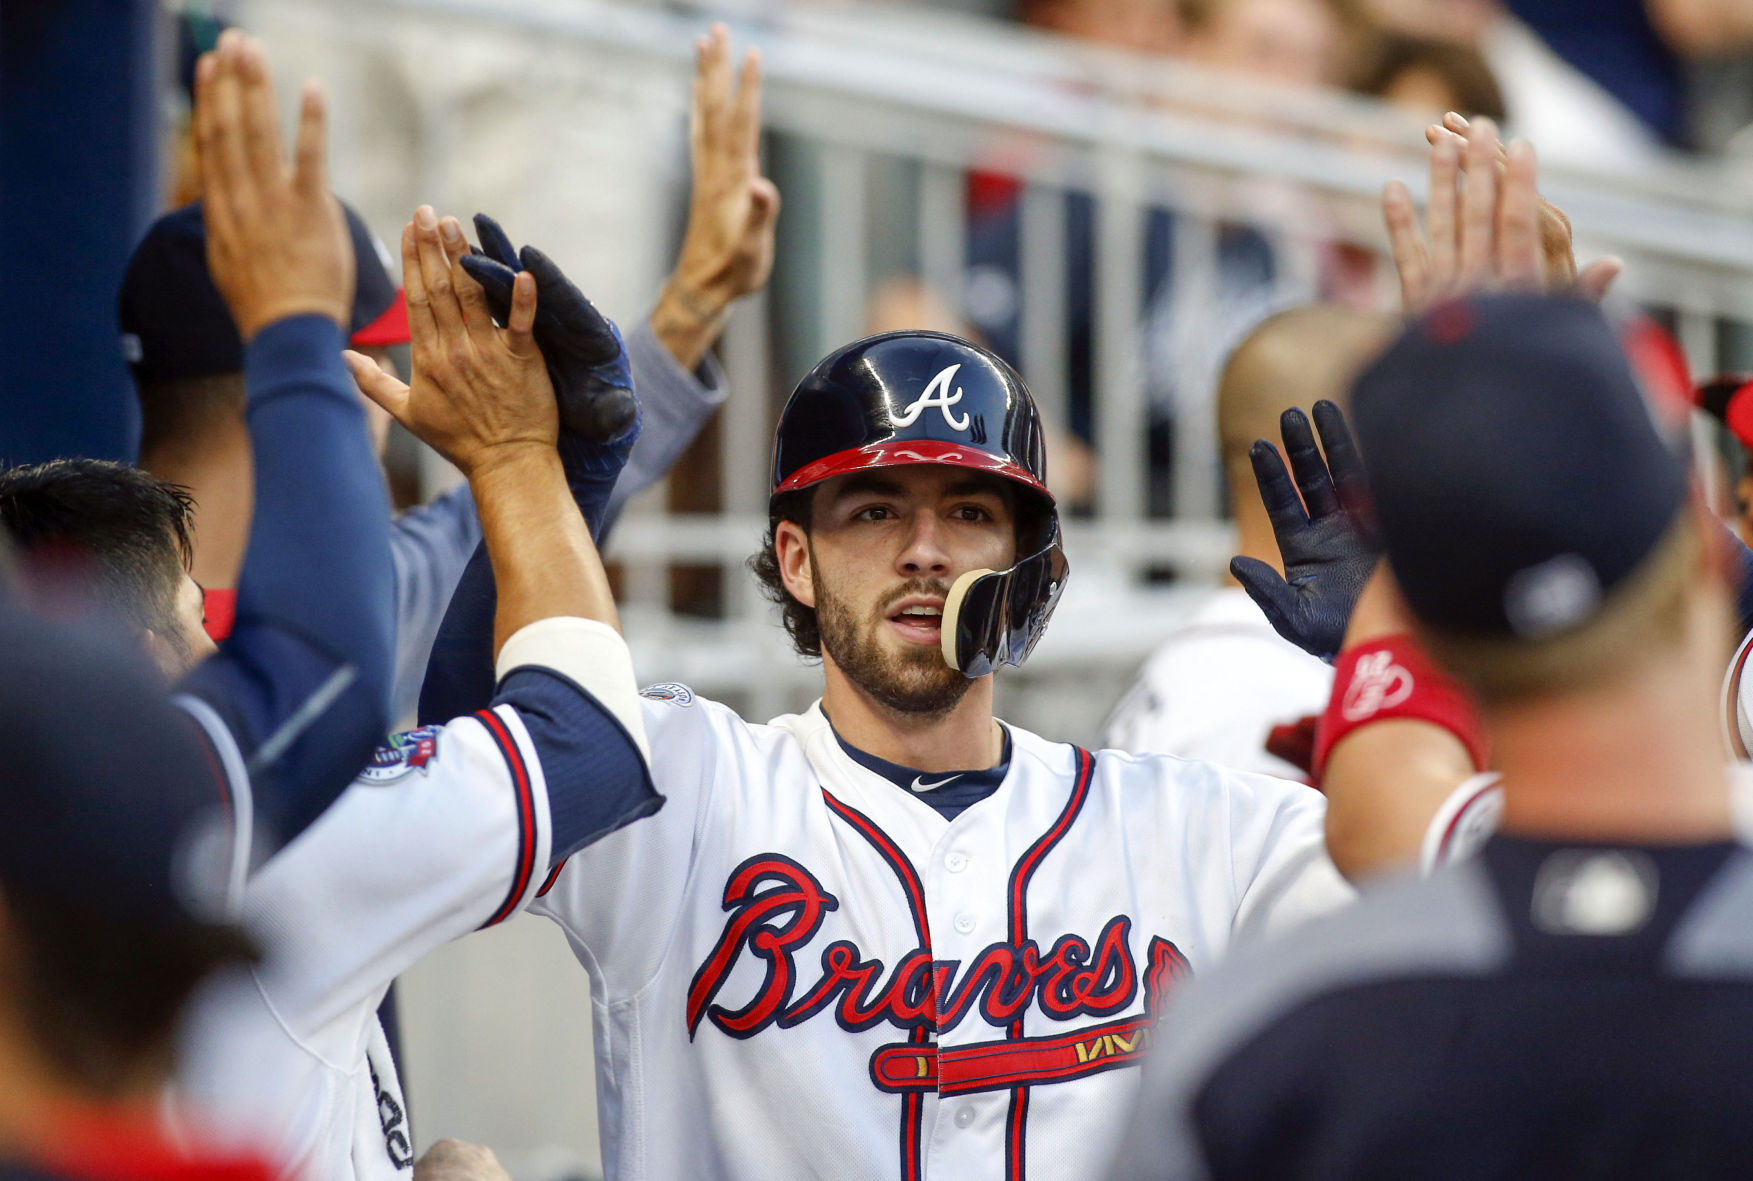 Braves send former Vanderbilt star Dansby Swanson to minors